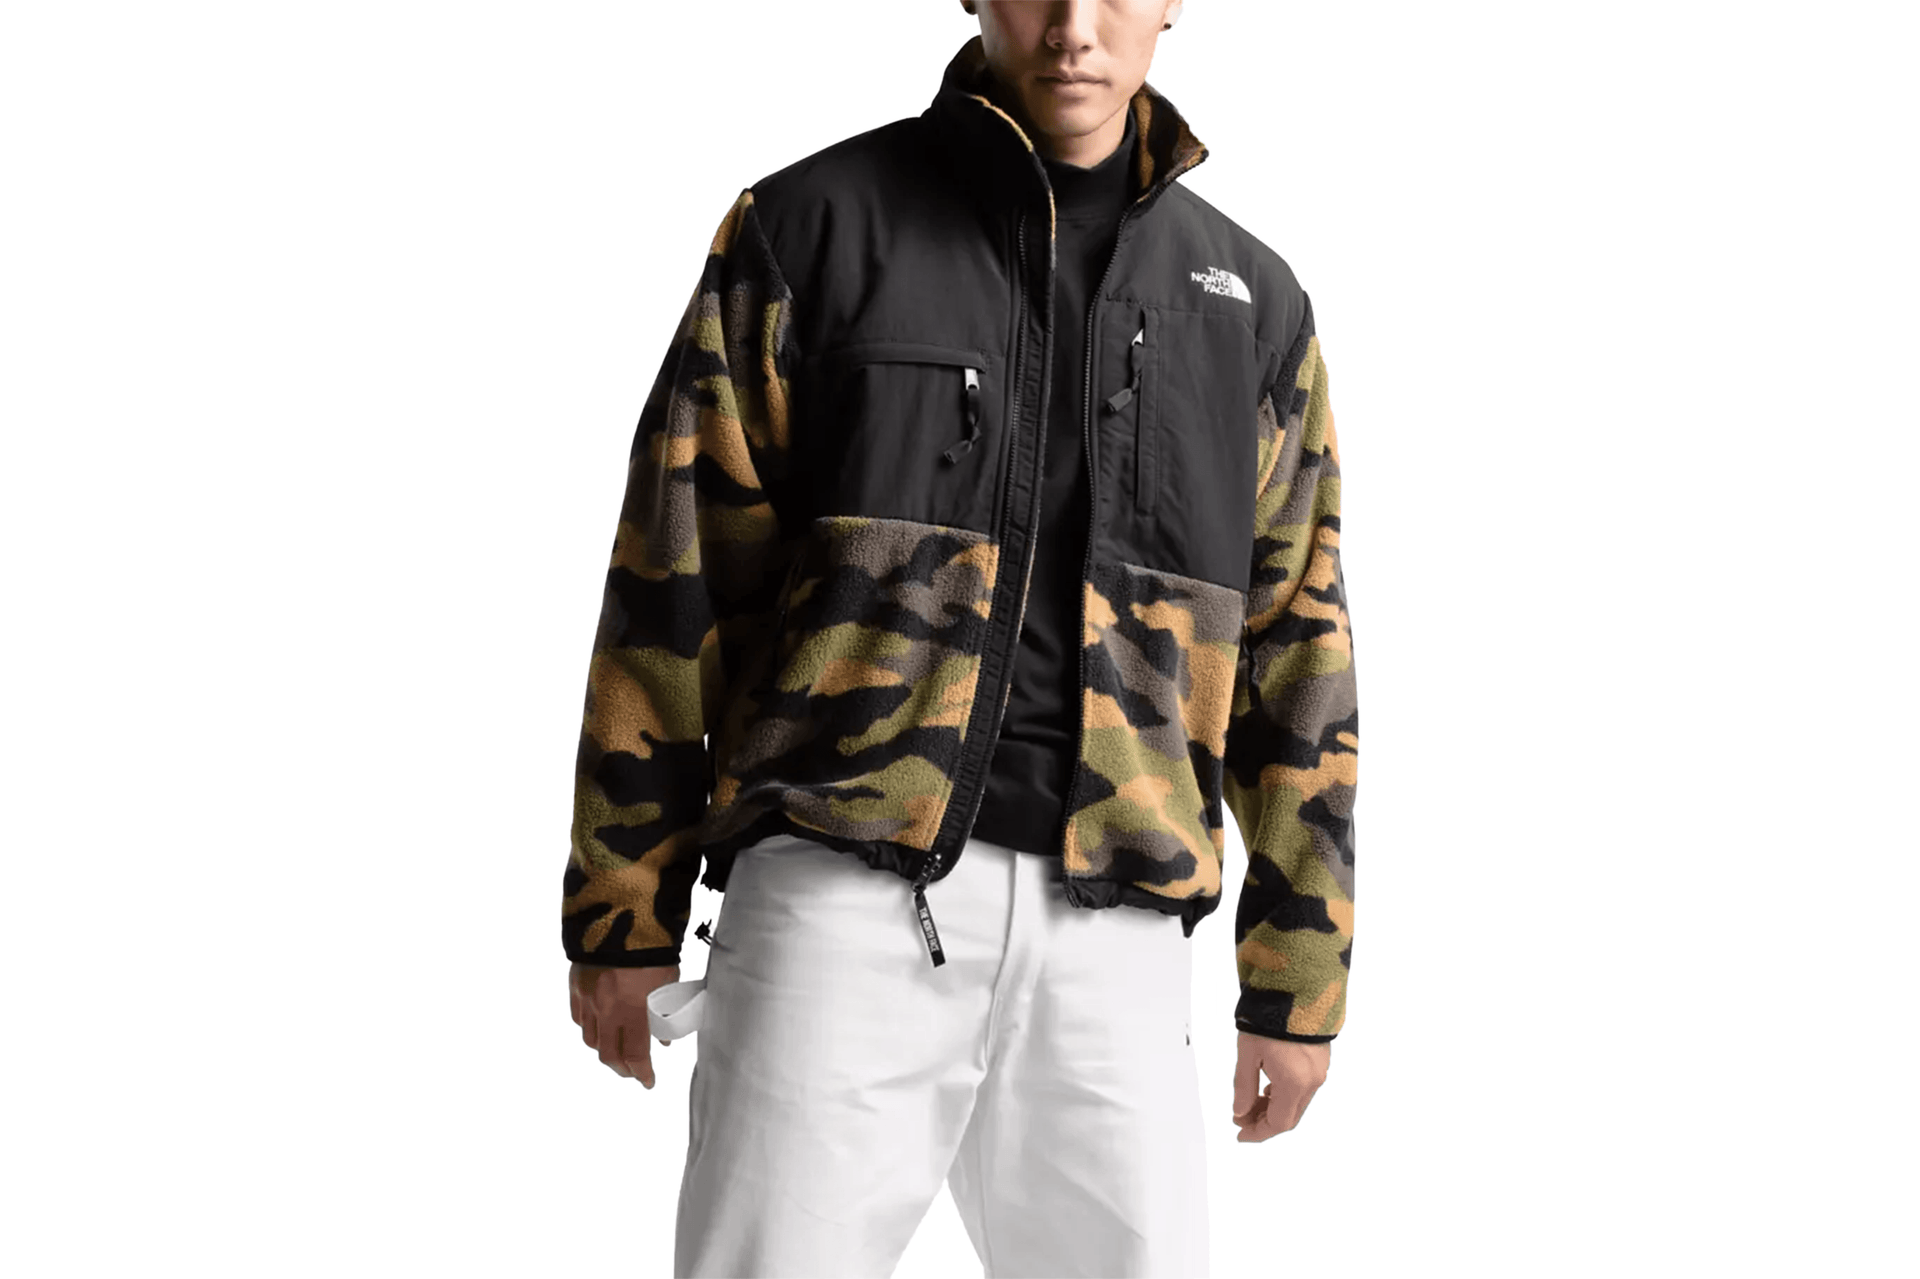 95RTRO DENALI JKY-NF0A3XCEFQ9 MENS SOFTGOODS THE NORTH FACE